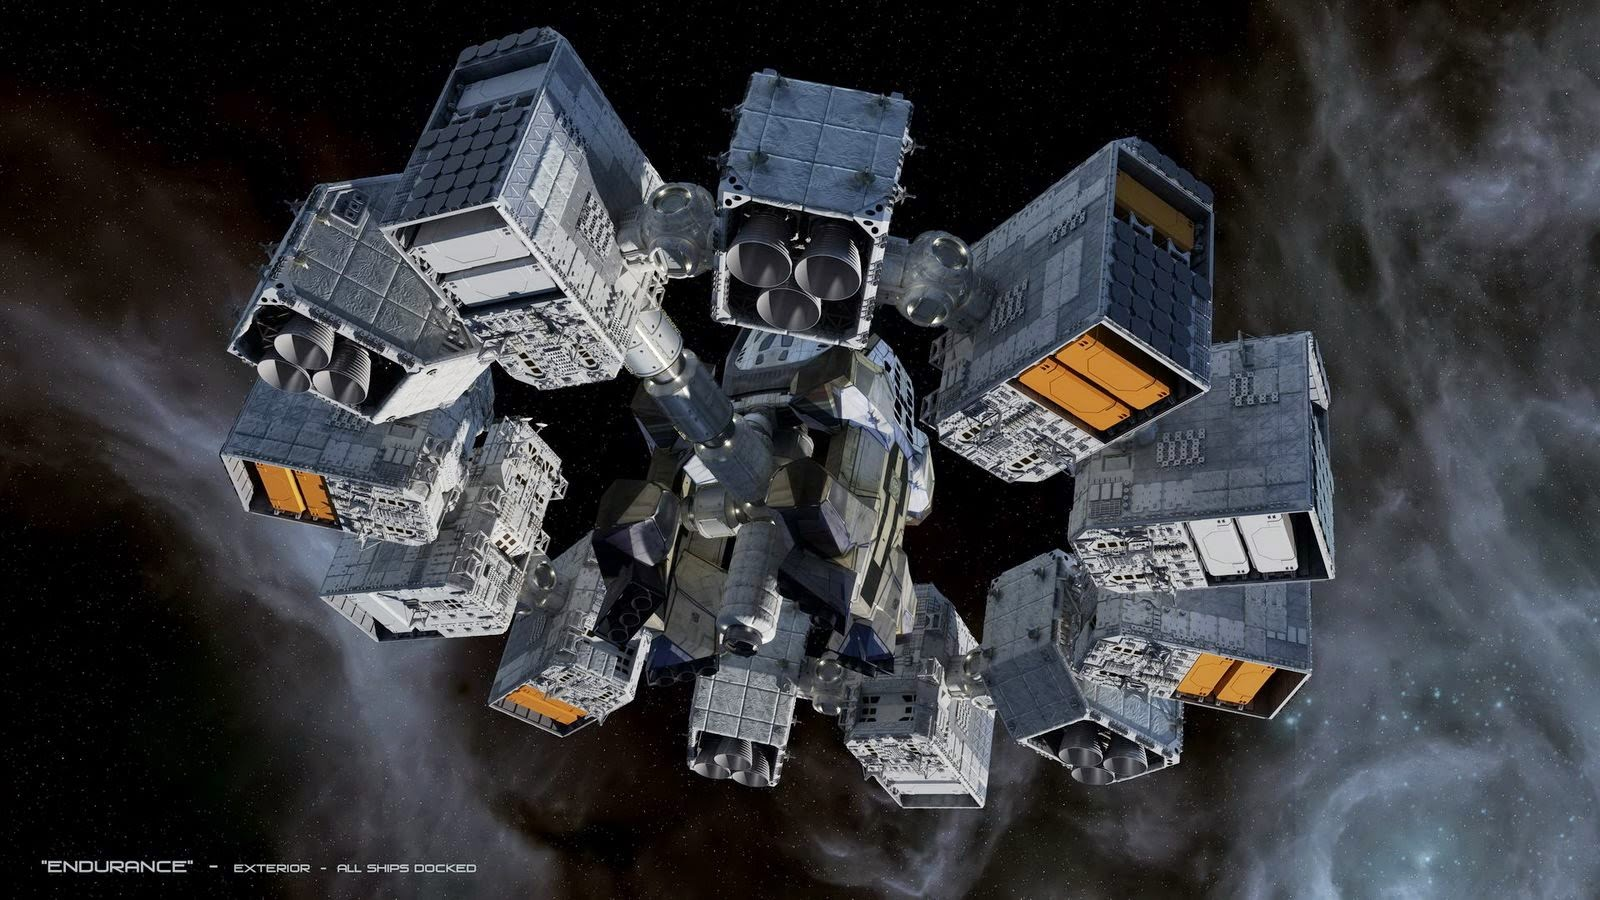 interstellar spacecraft design - photo #18